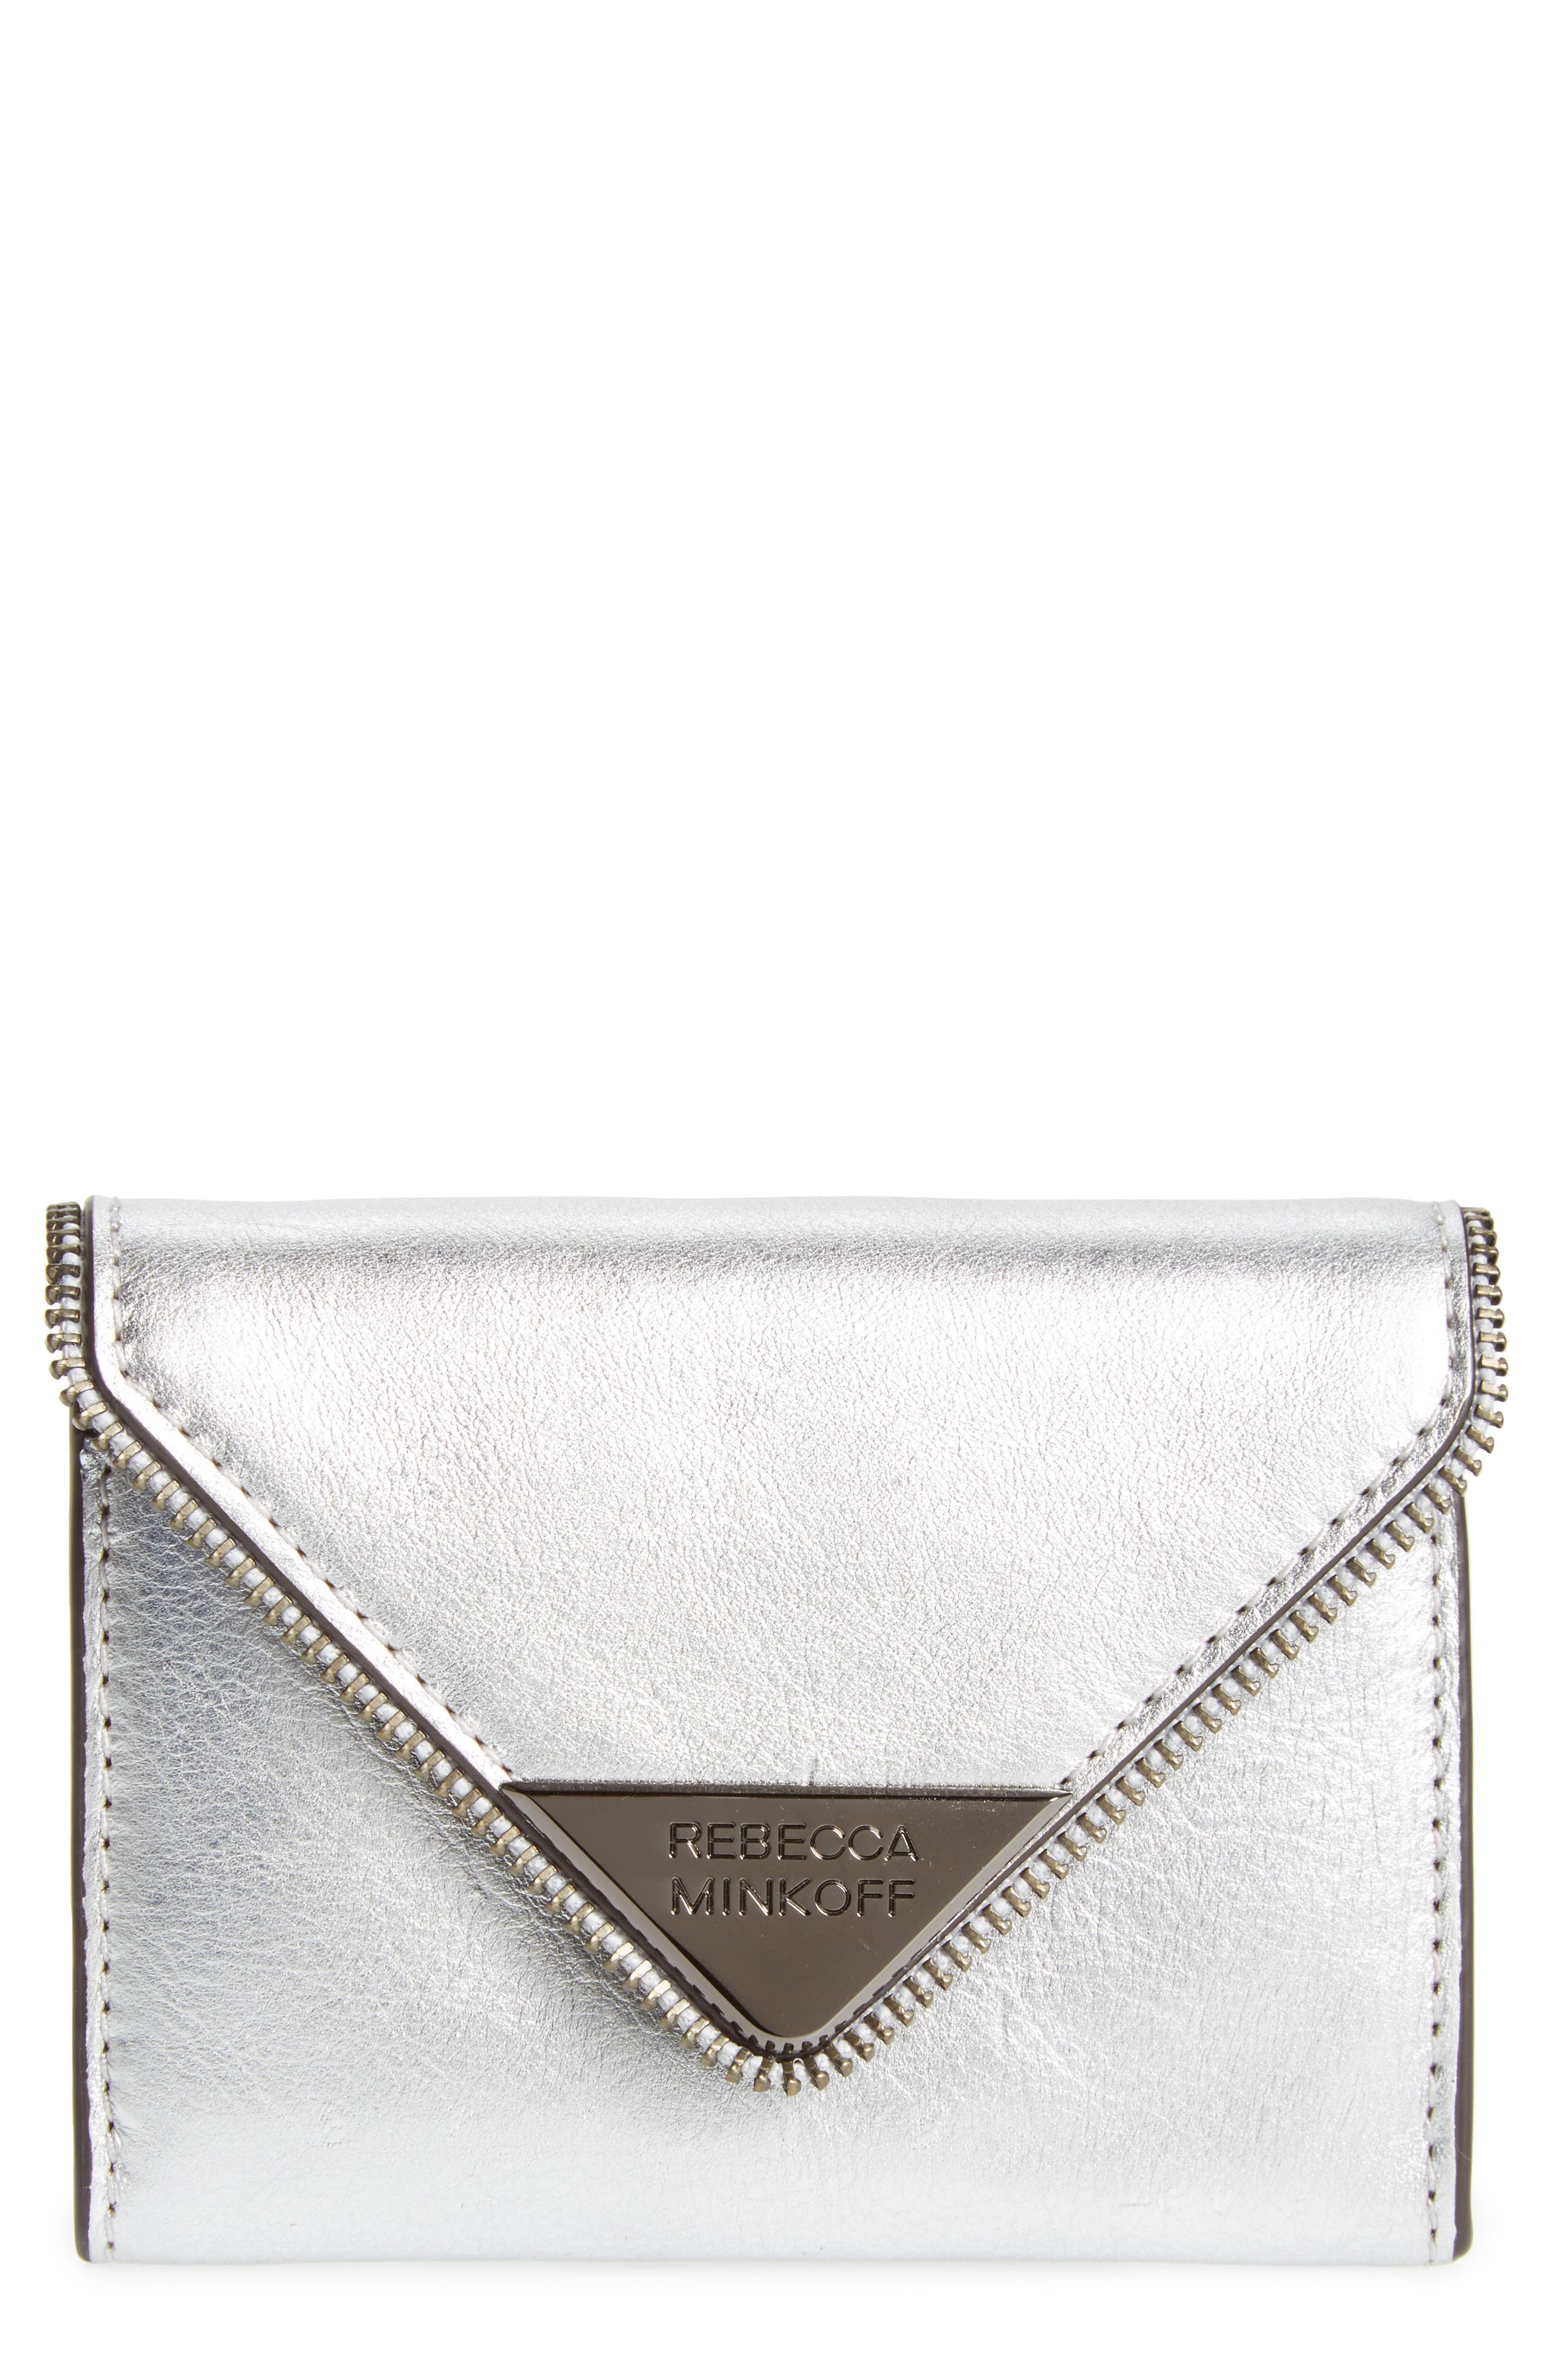 Rebecca Minkoff Molly Metro Metallic Leather Wallet